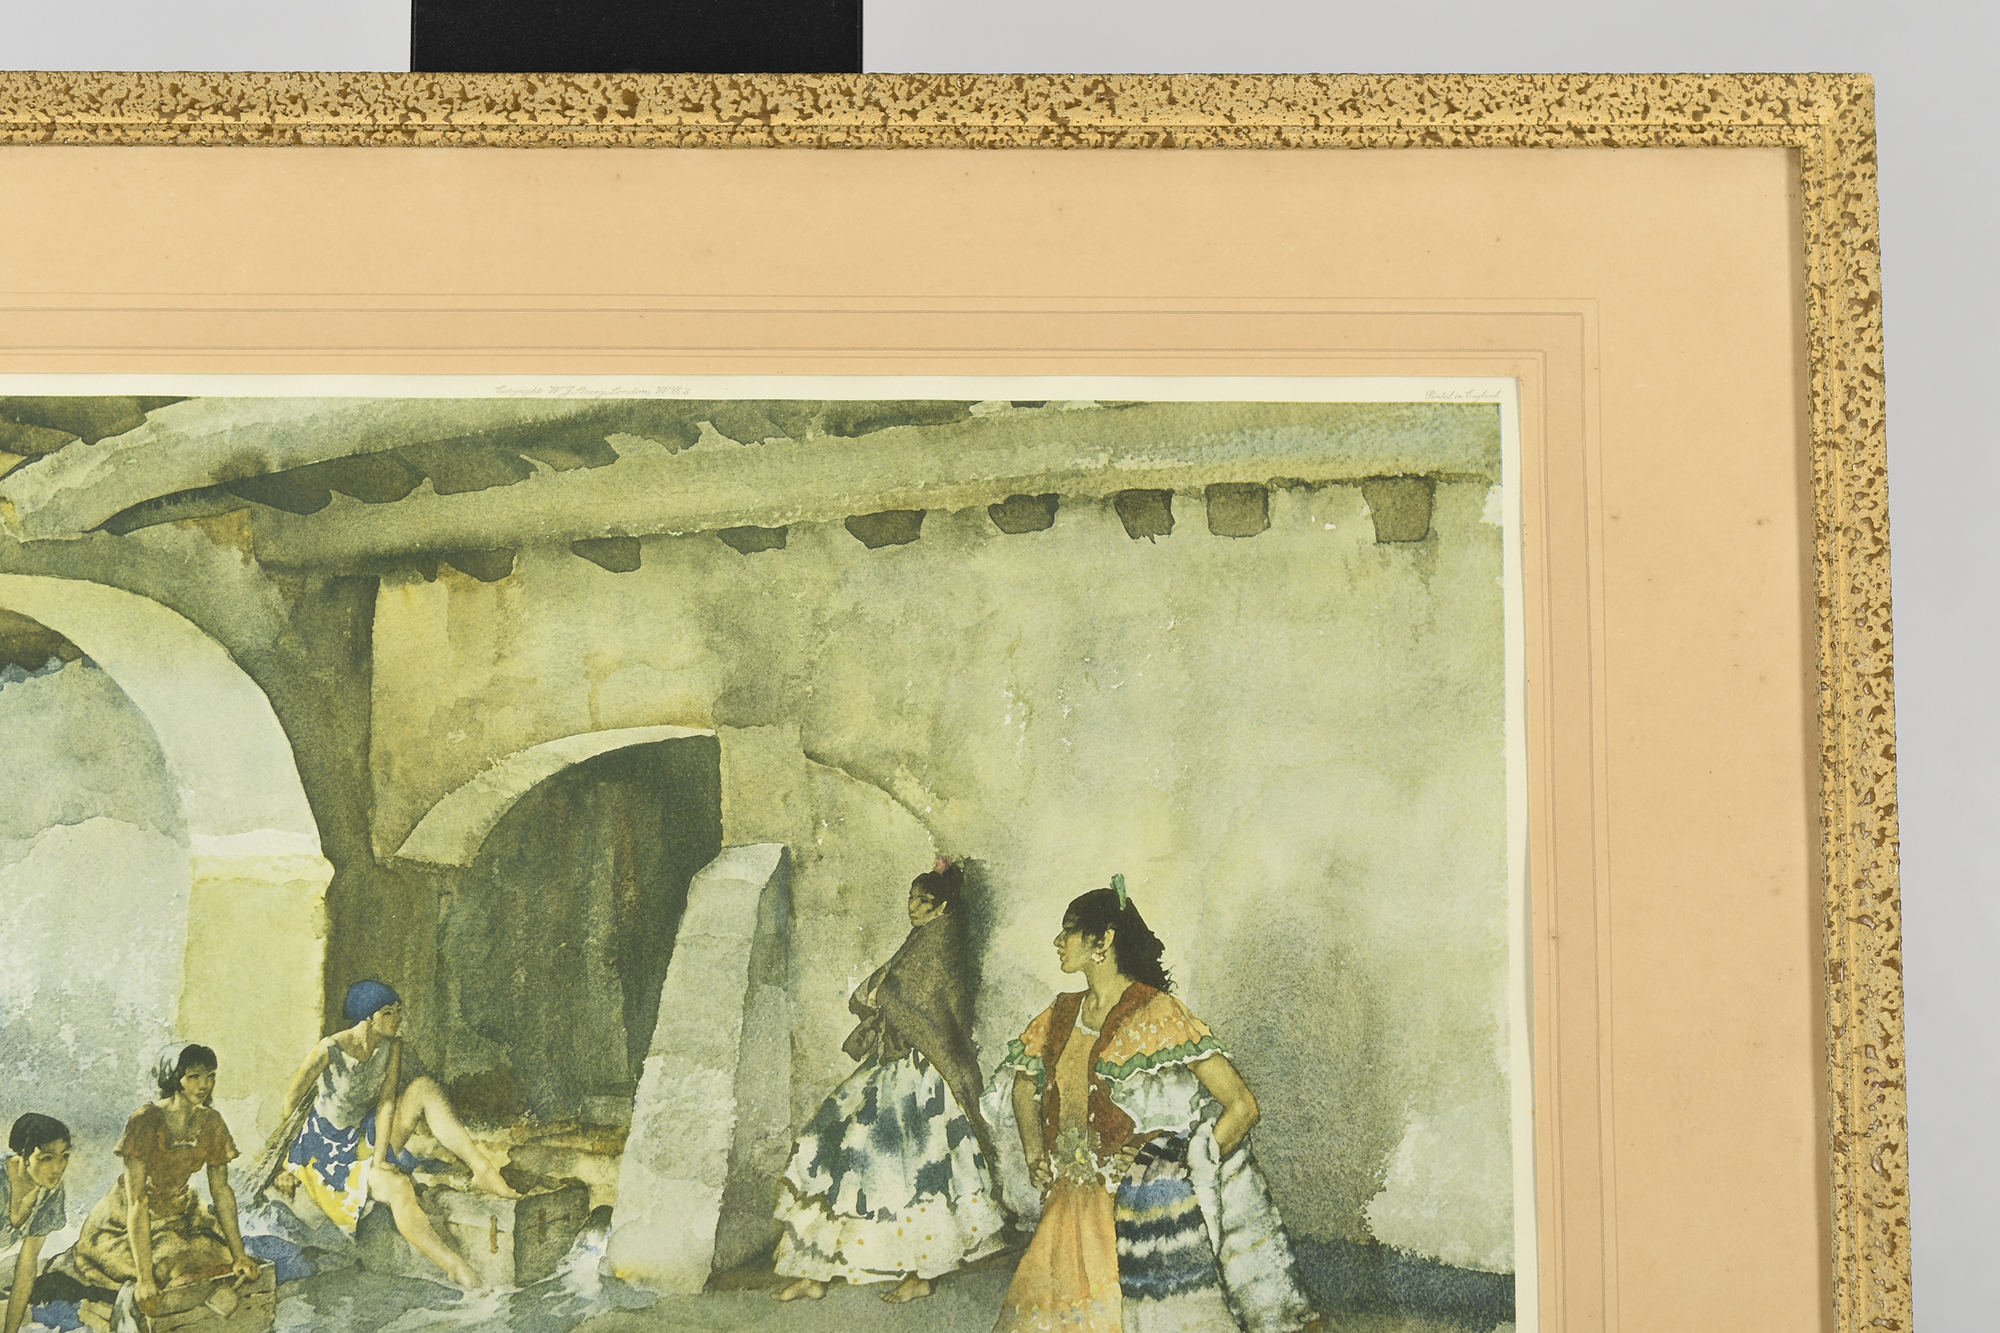 """Signed Limited Edition by Sir William Russell Flint """"Unwelcome Observers"""" - Image 7 of 8"""